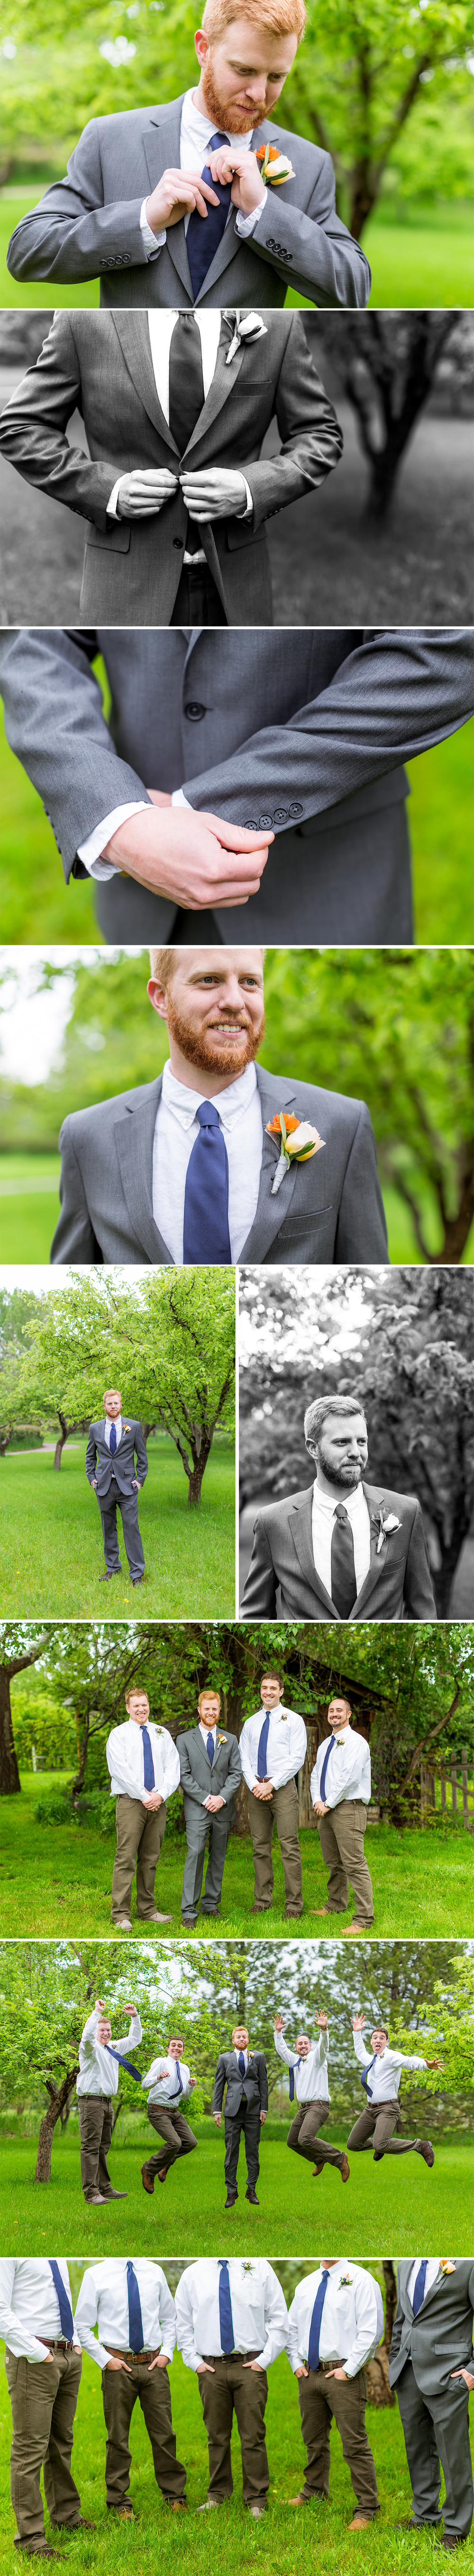 2 Fort Collins Wedding Photography.jpg